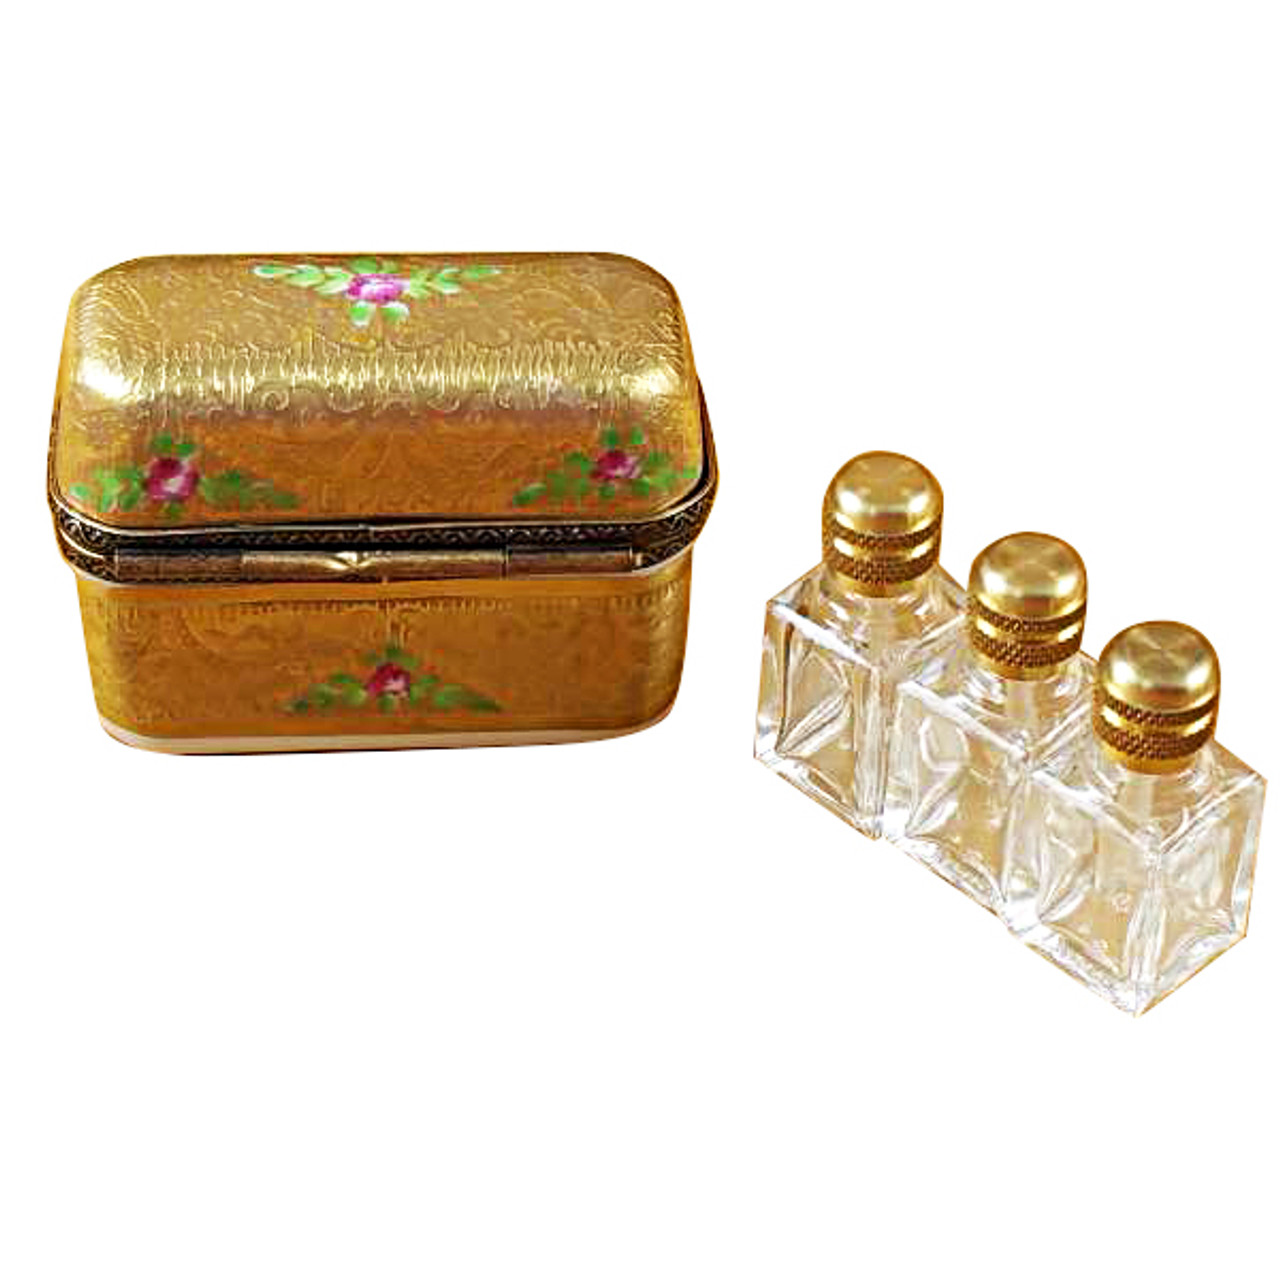 Limoges Imports Gold Flowery W/3 Bottles Limoges Box